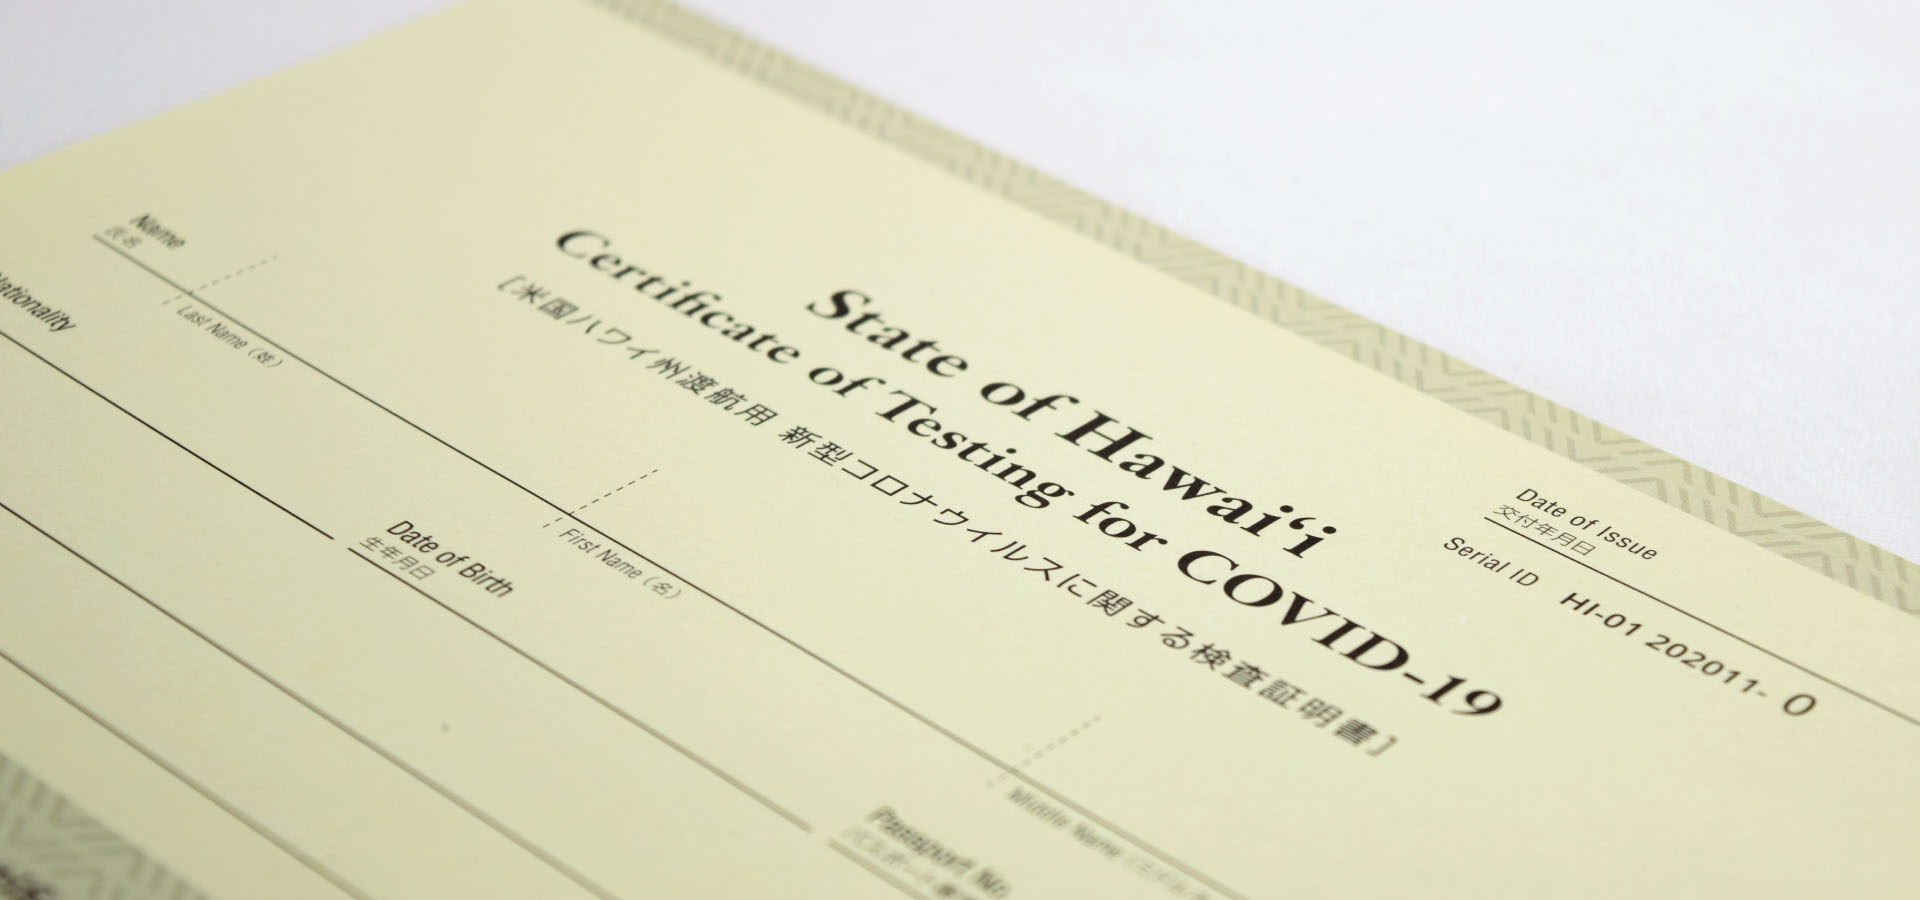 State of Hawai'i Certificate of Testing for Covid-19